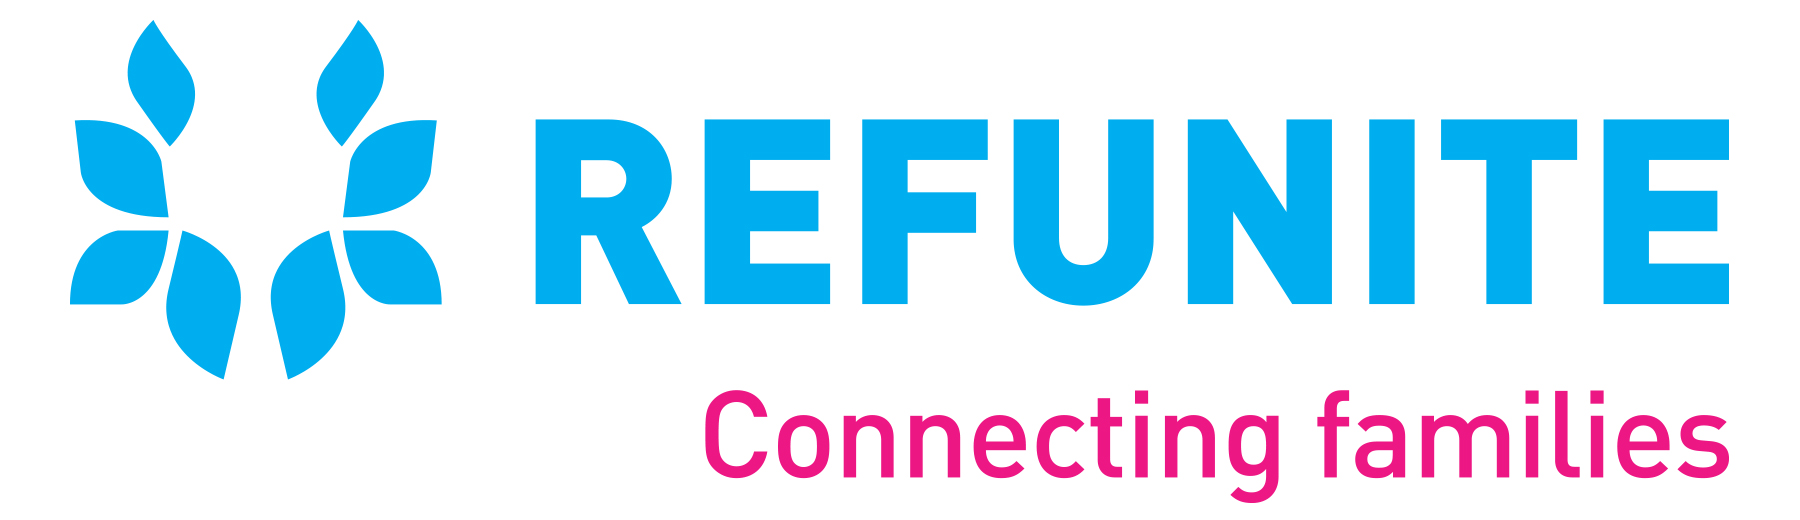 refunite logo